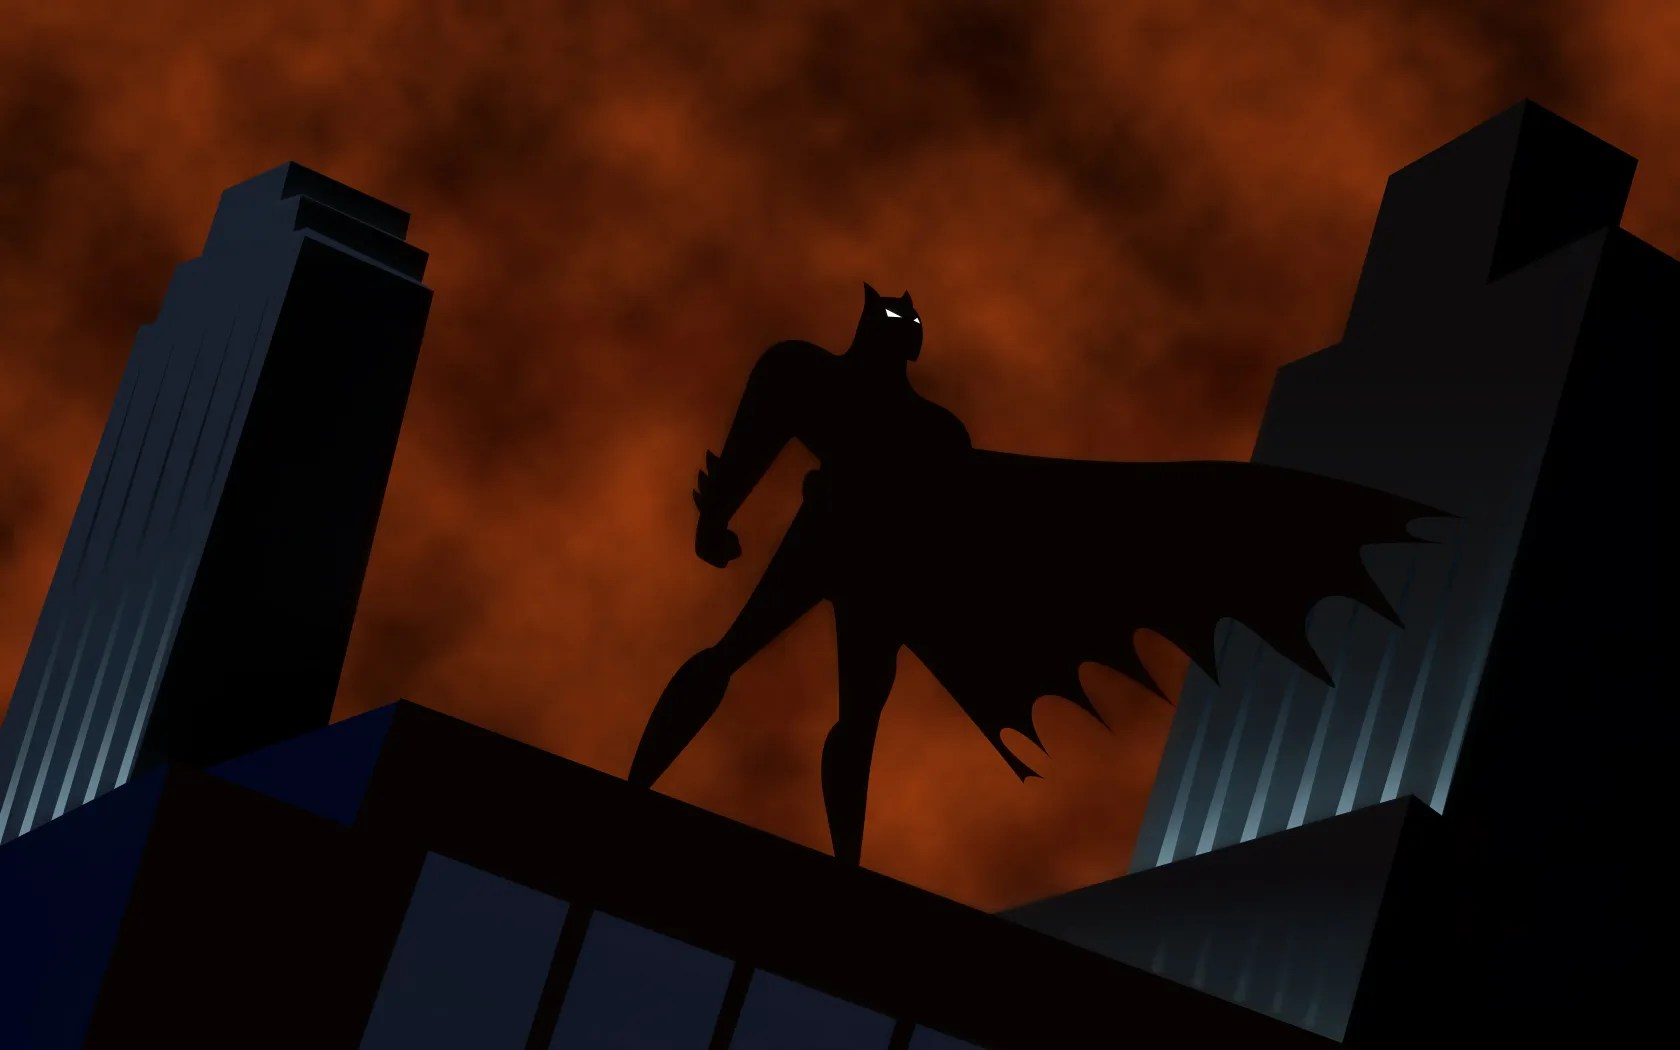 https://i1.wp.com/cdn.collider.com/wp-content/uploads/2016/03/batman-the-animated-series-3.jpg